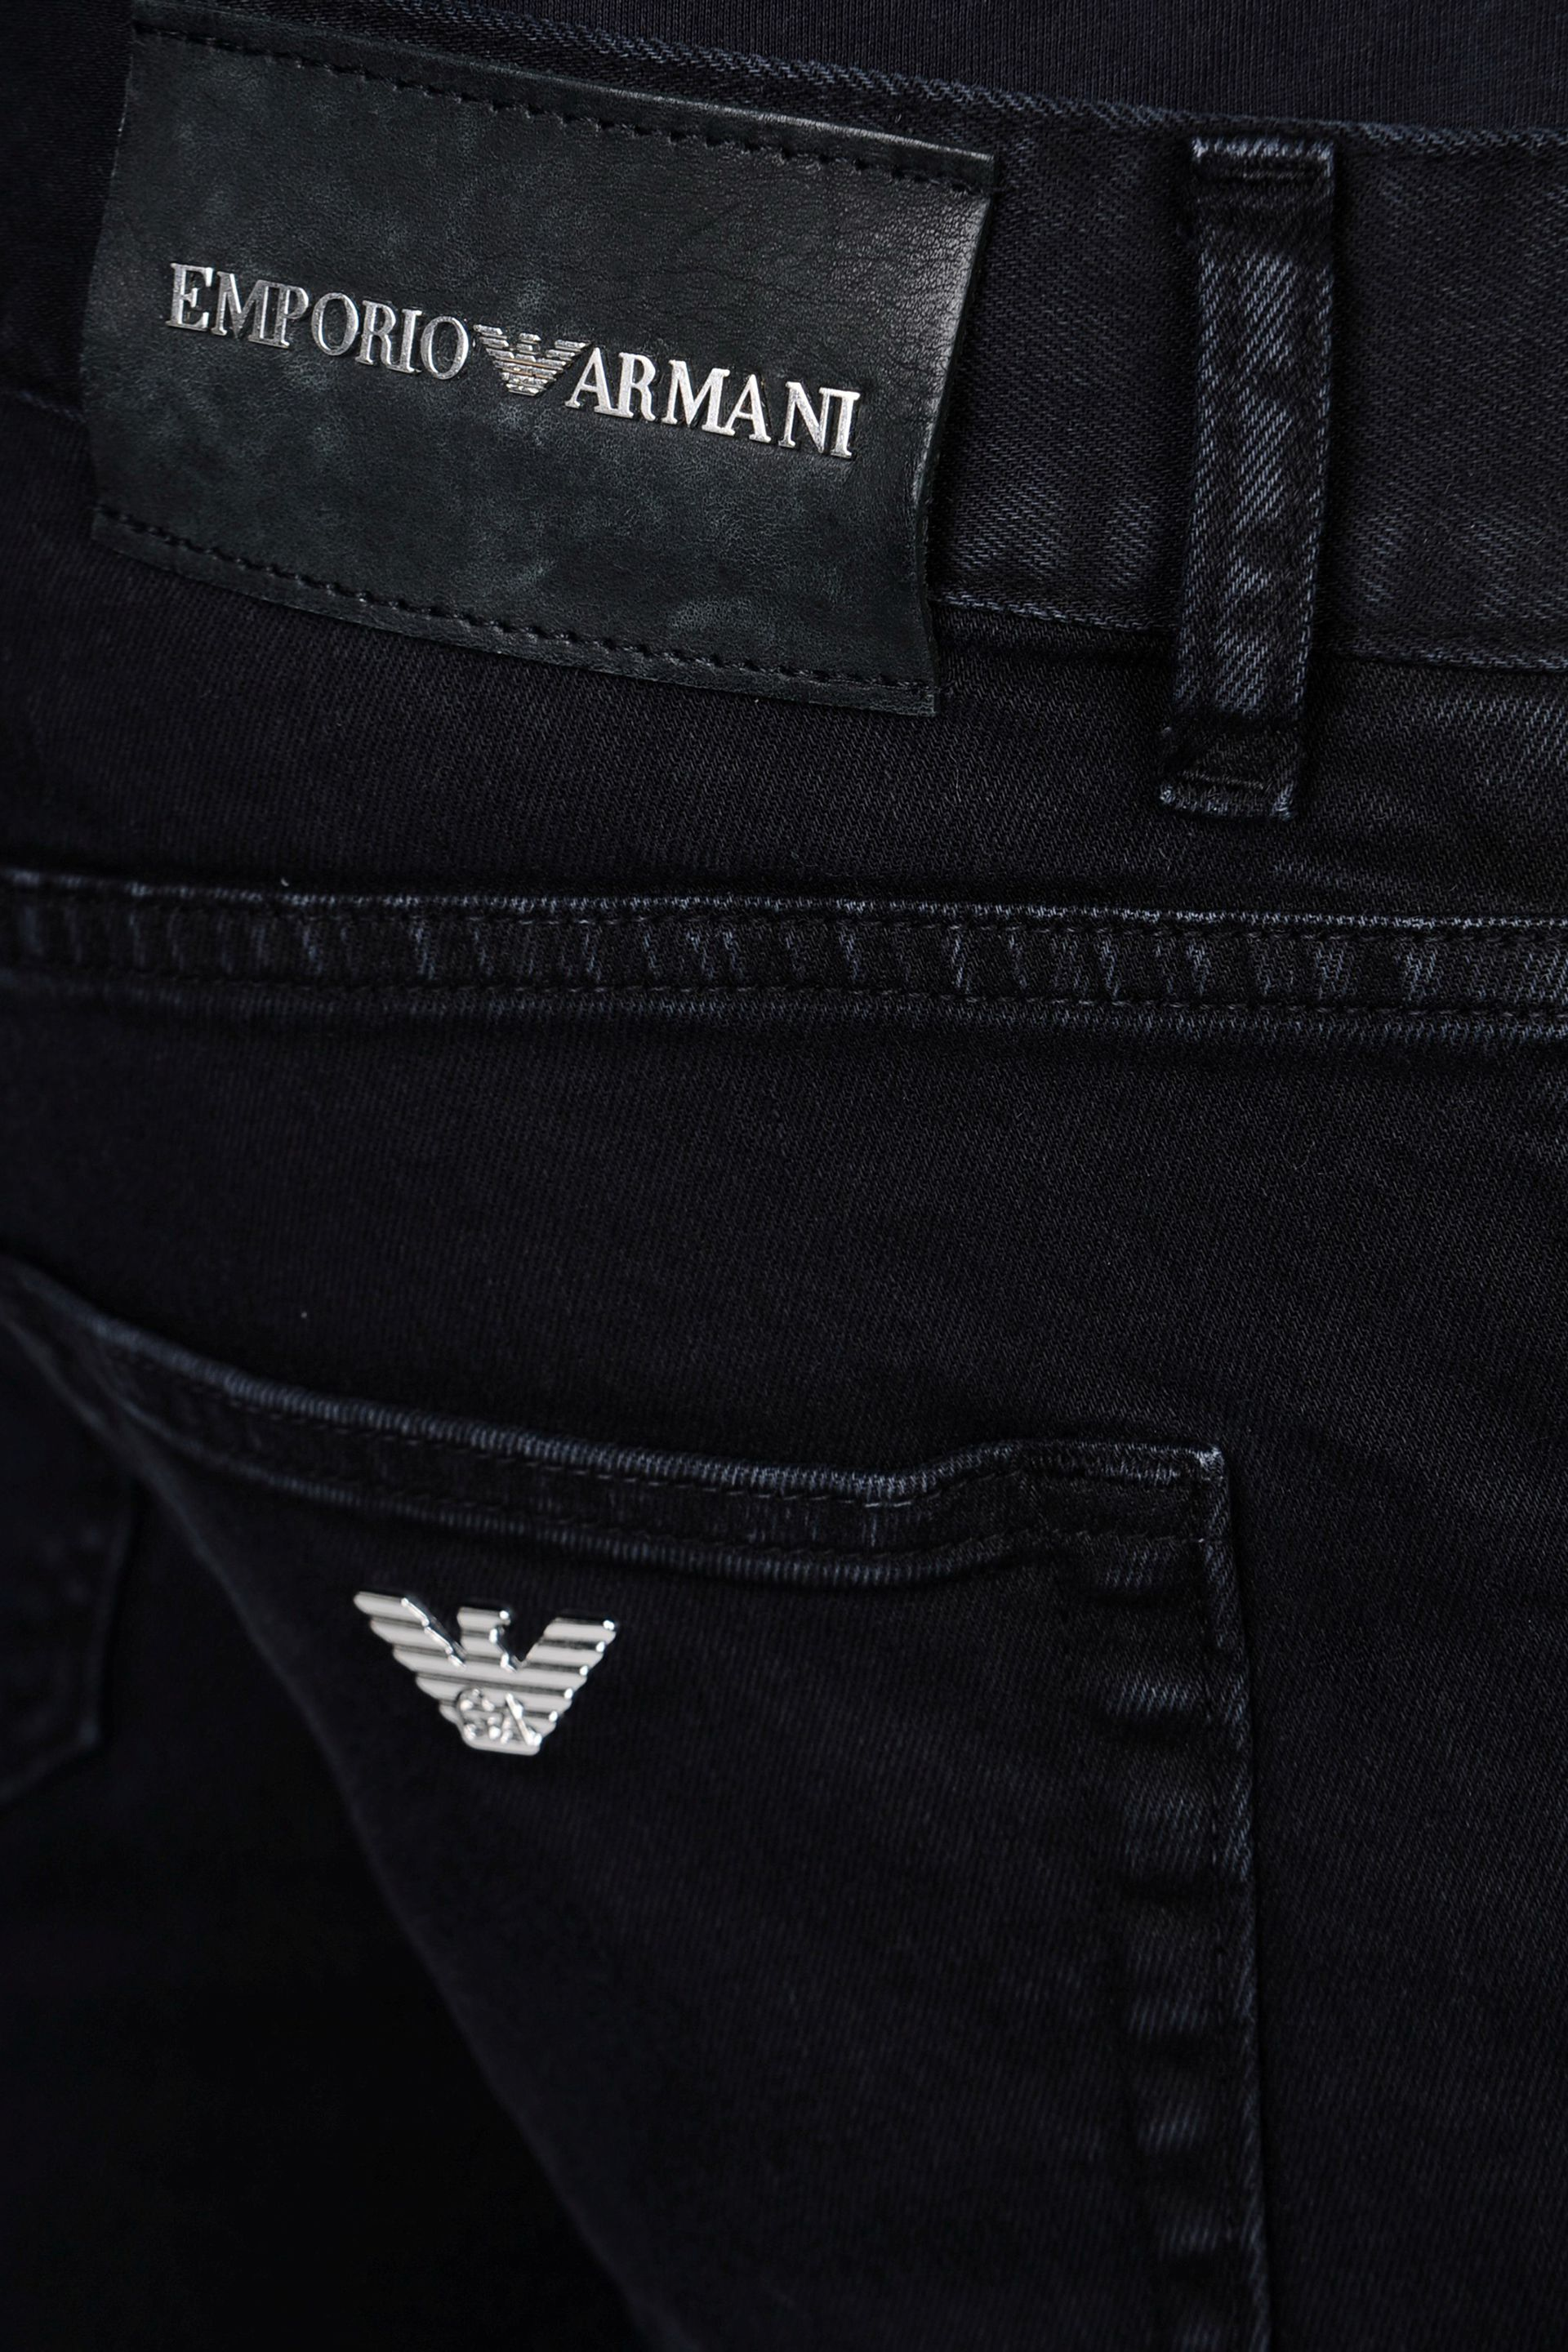 acb28a34 Emporio Armani Slim Fit Clean Wash Jeans in Black for Men - Lyst